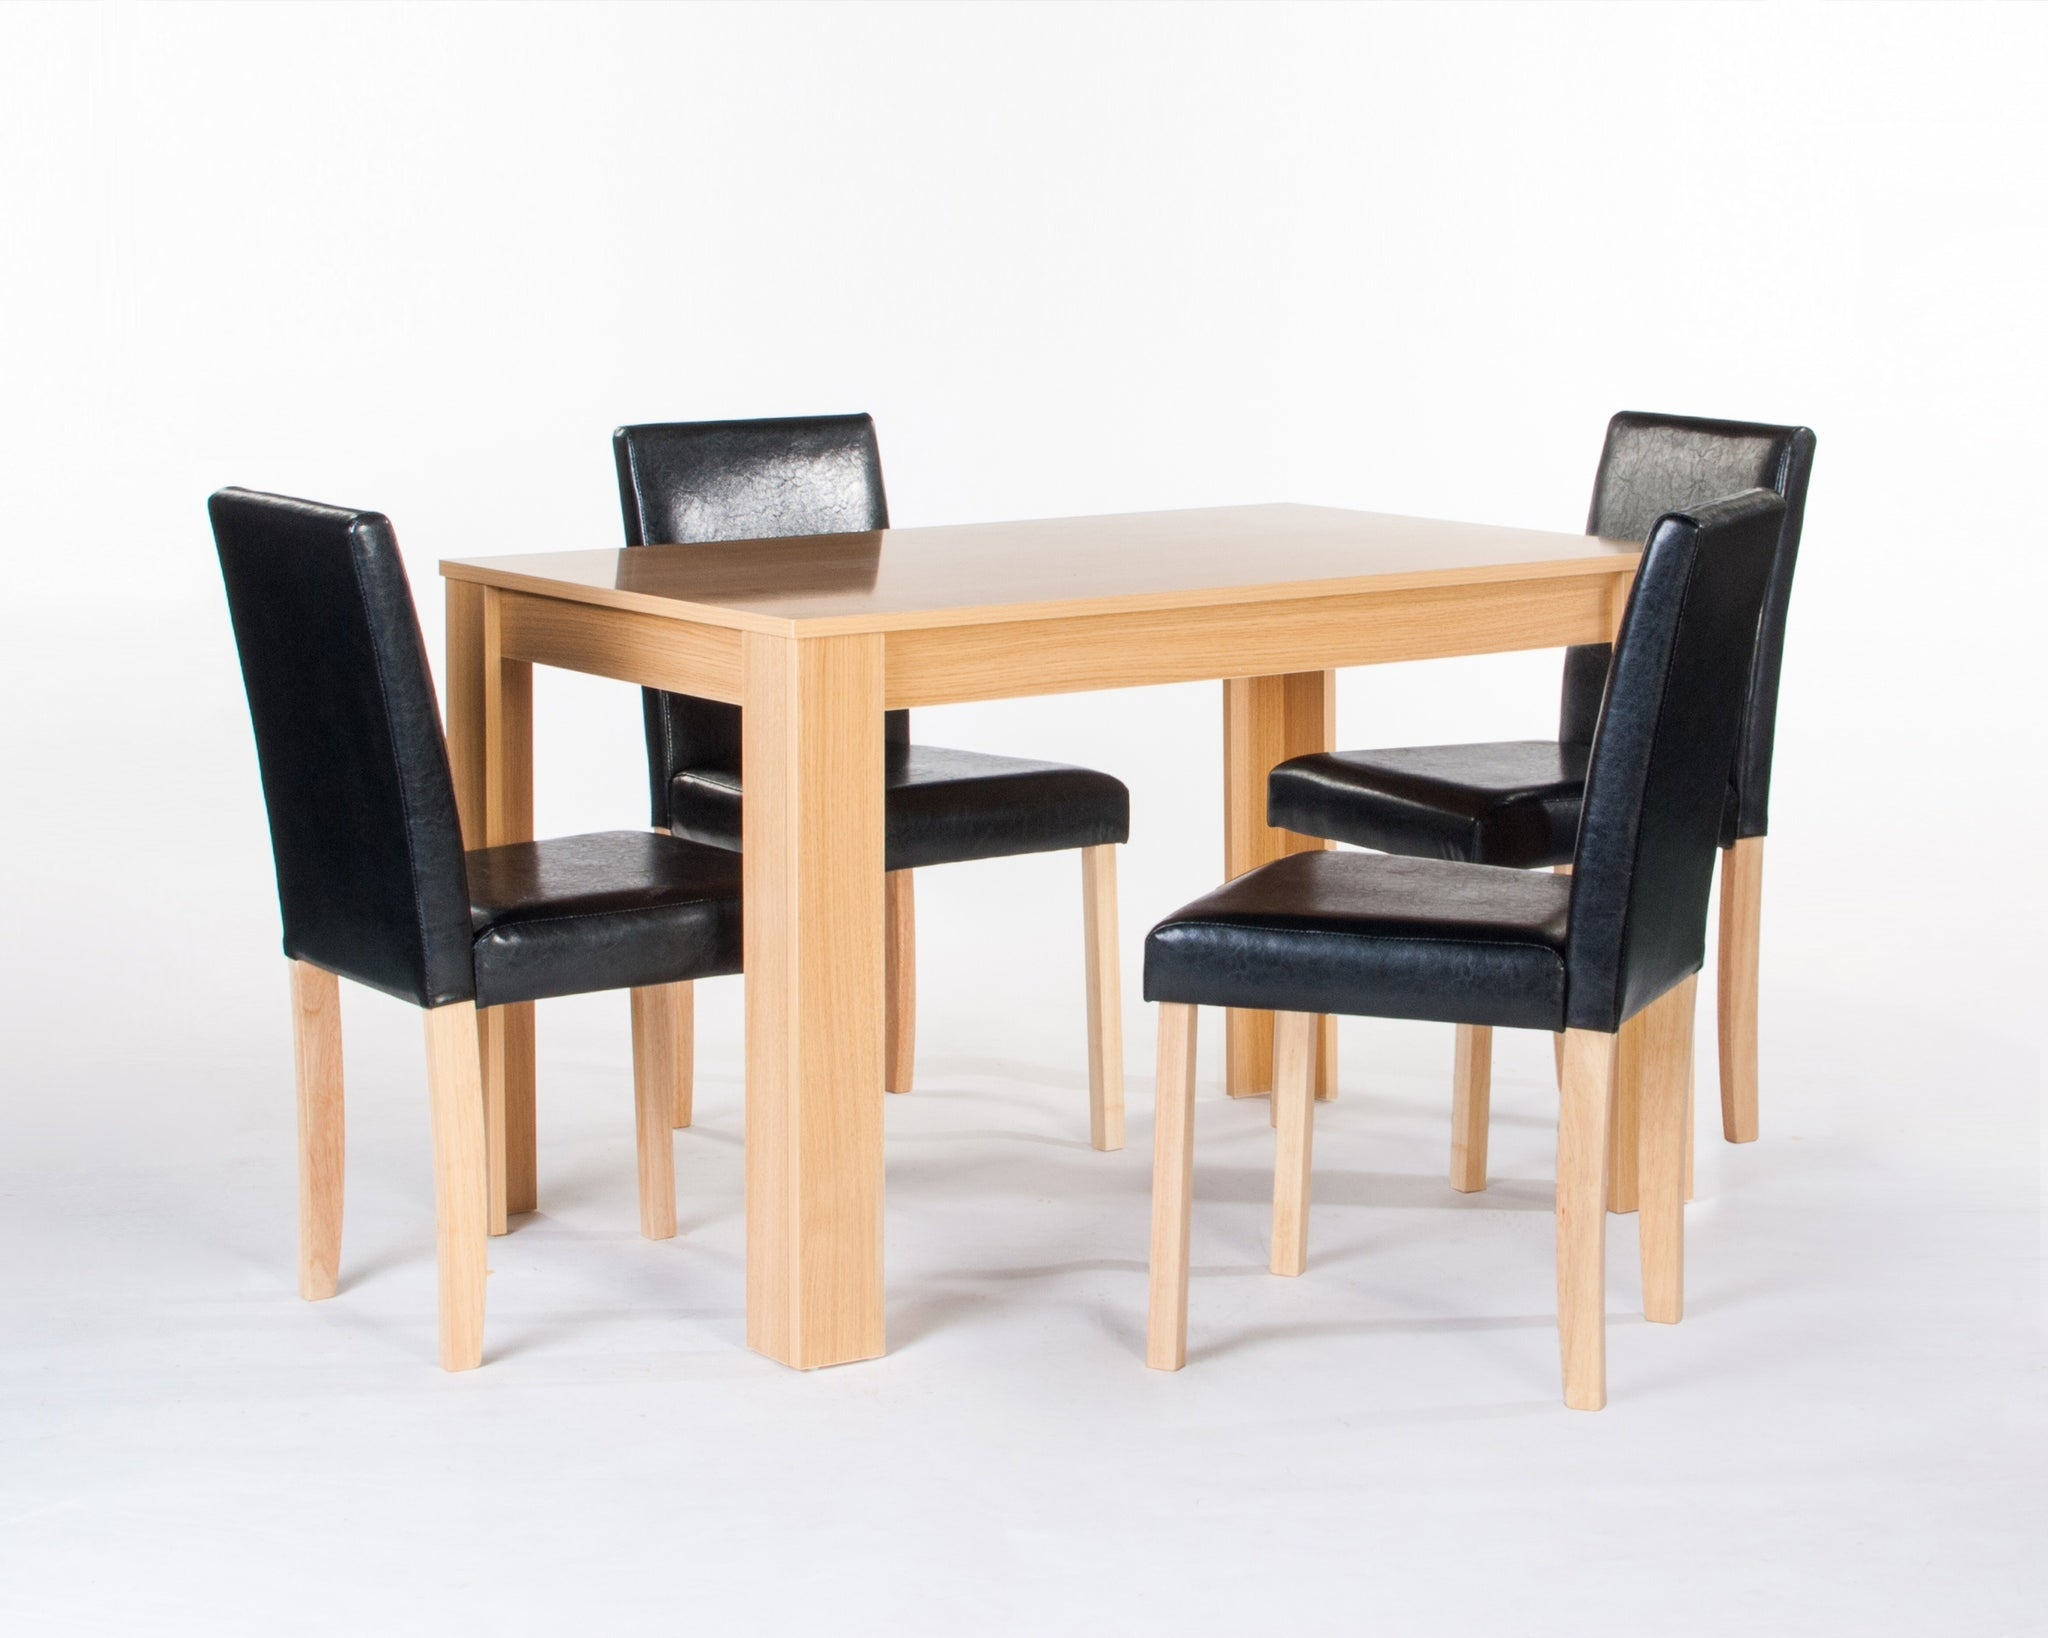 Cambridge table and chairs in oak colour- glenwood-furnishings